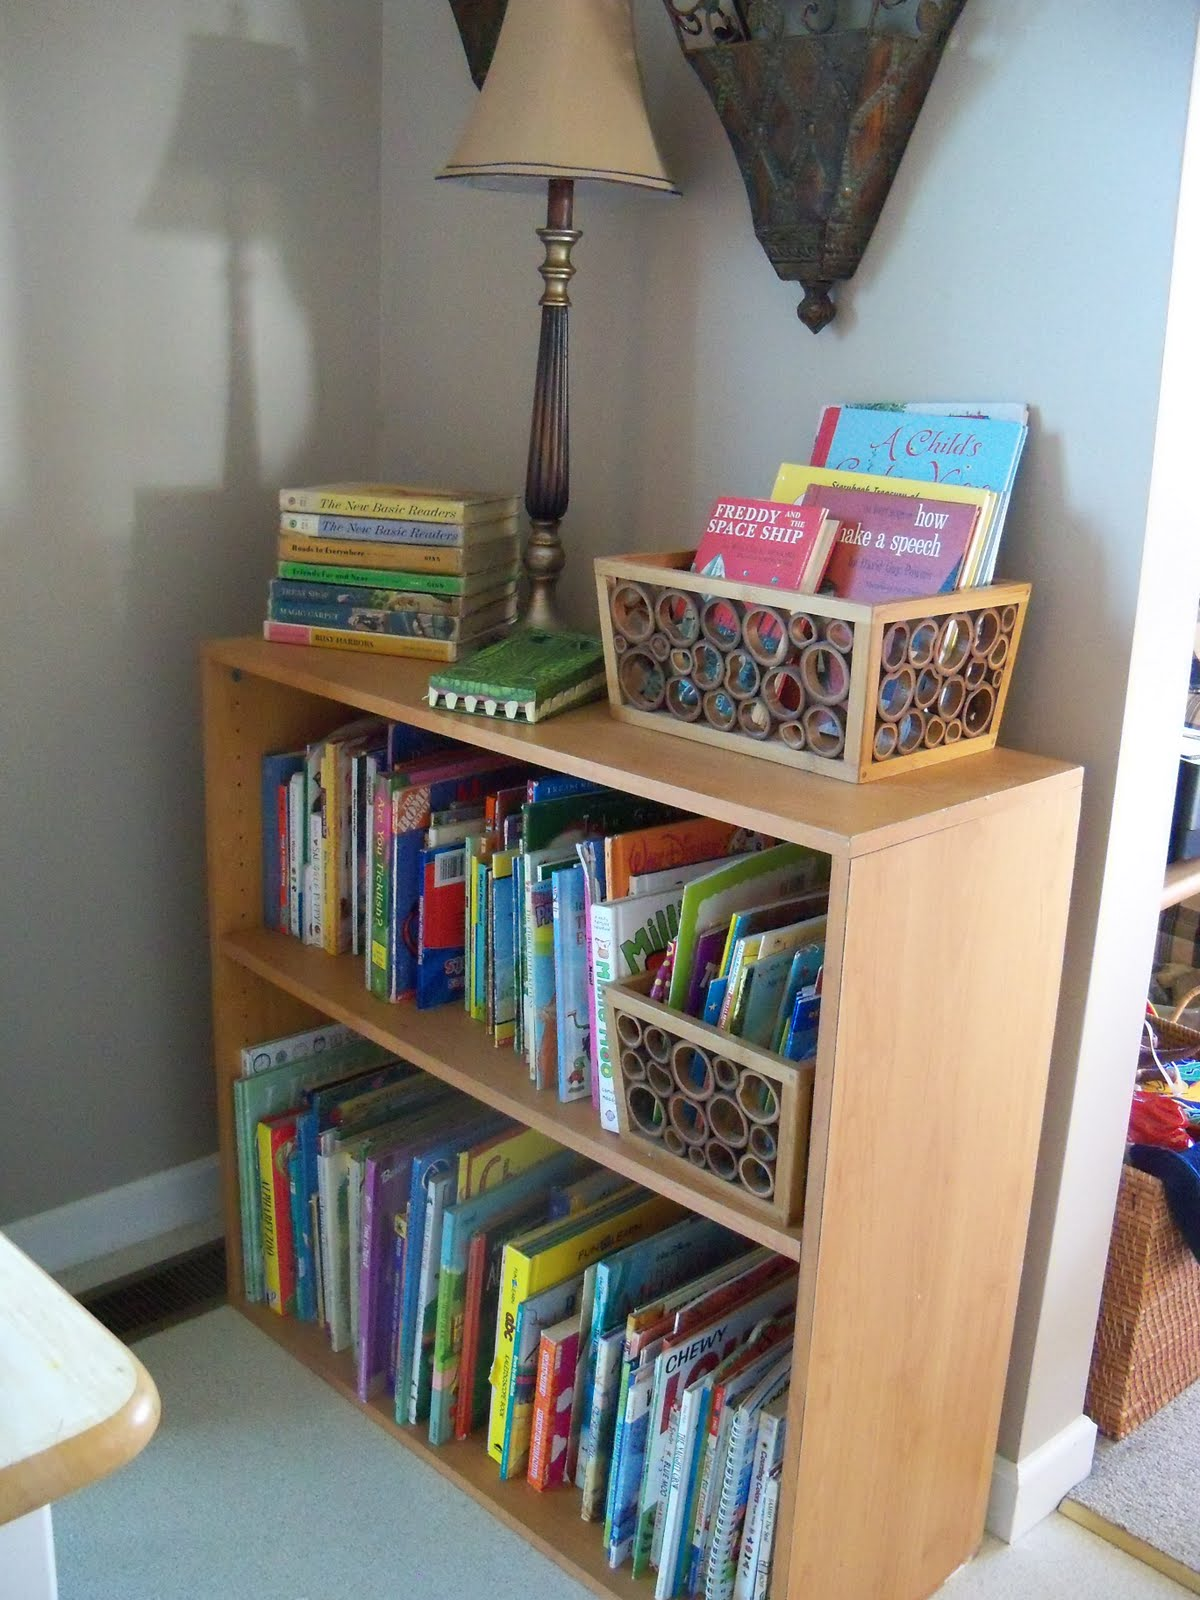 Sprouted Kitchen Book Dining Tables Sprout Schoolhouse Our School Room On Its Best Behavior